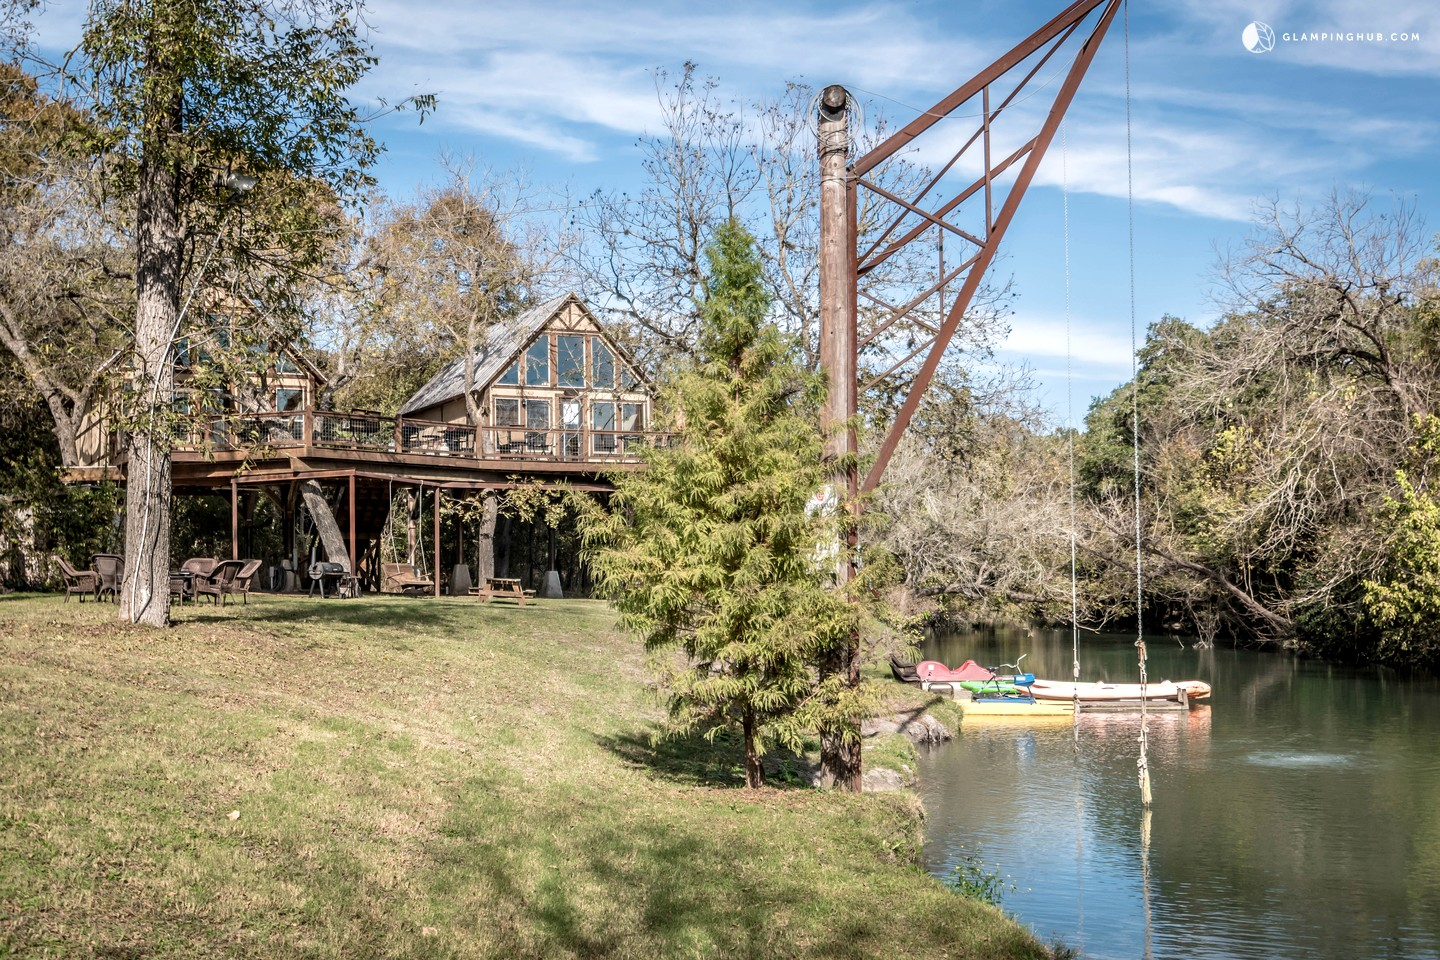 Tree house rentals in new braunfels for Creekside new braunfels